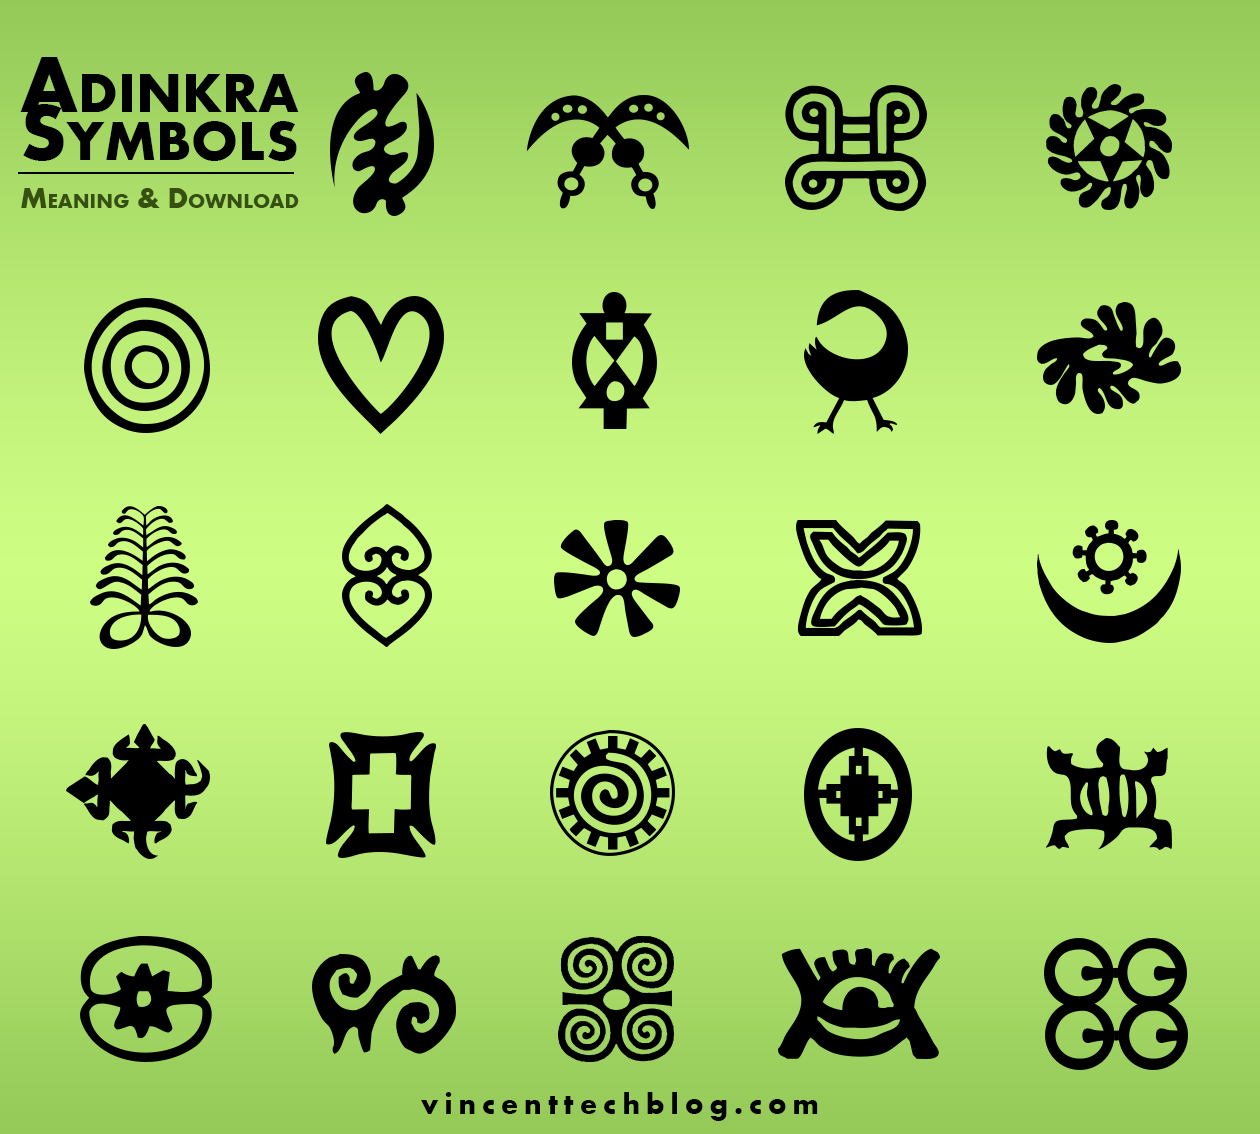 Adinkra Symbols Free Download Ghanaian Symbols Brushes Shapes